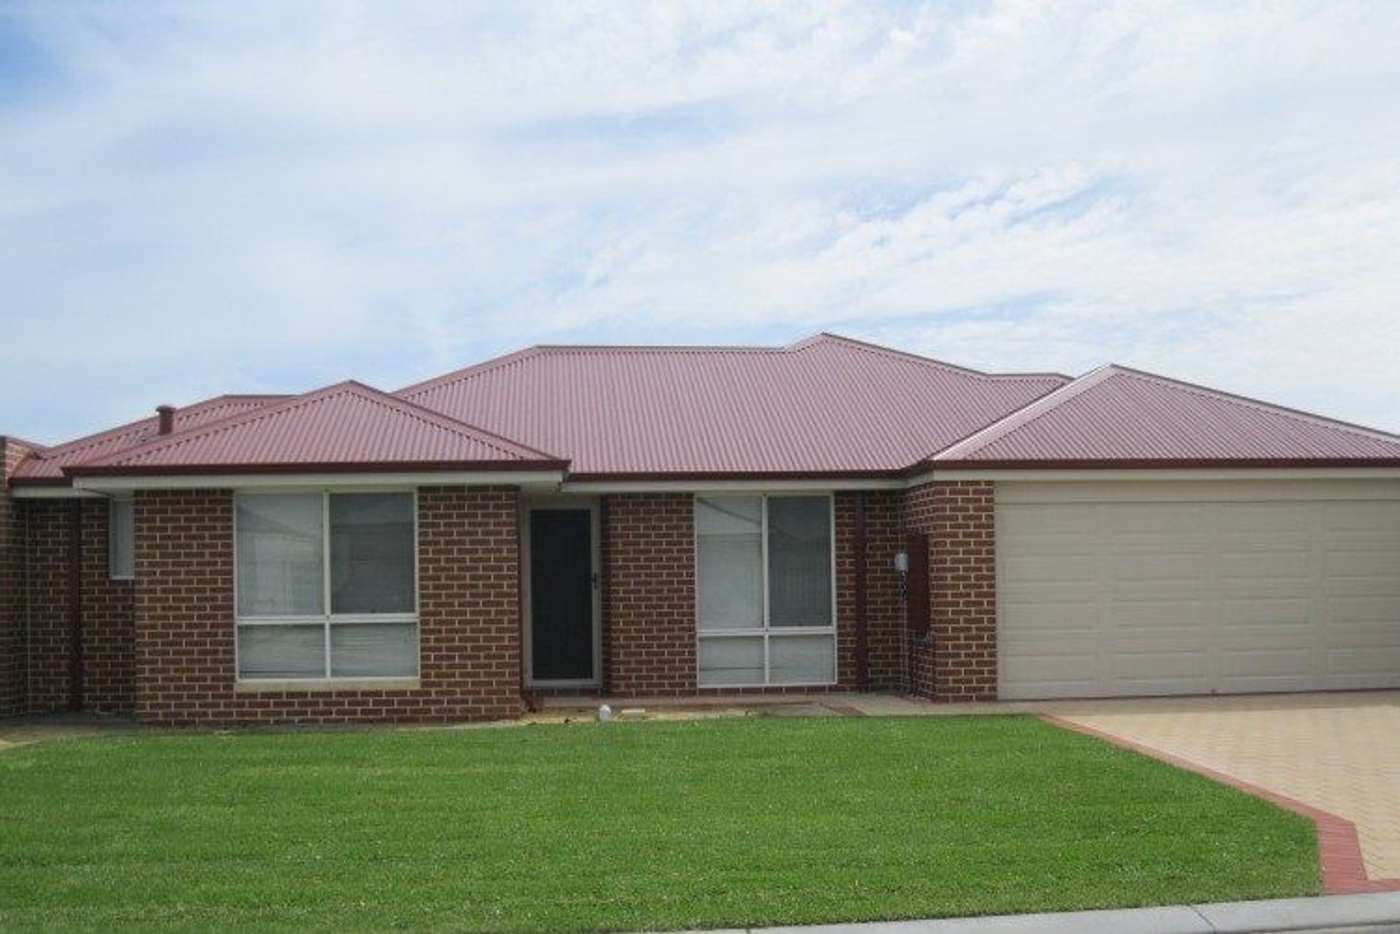 Main view of Homely house listing, 2A Milky Way Link, Australind WA 6233